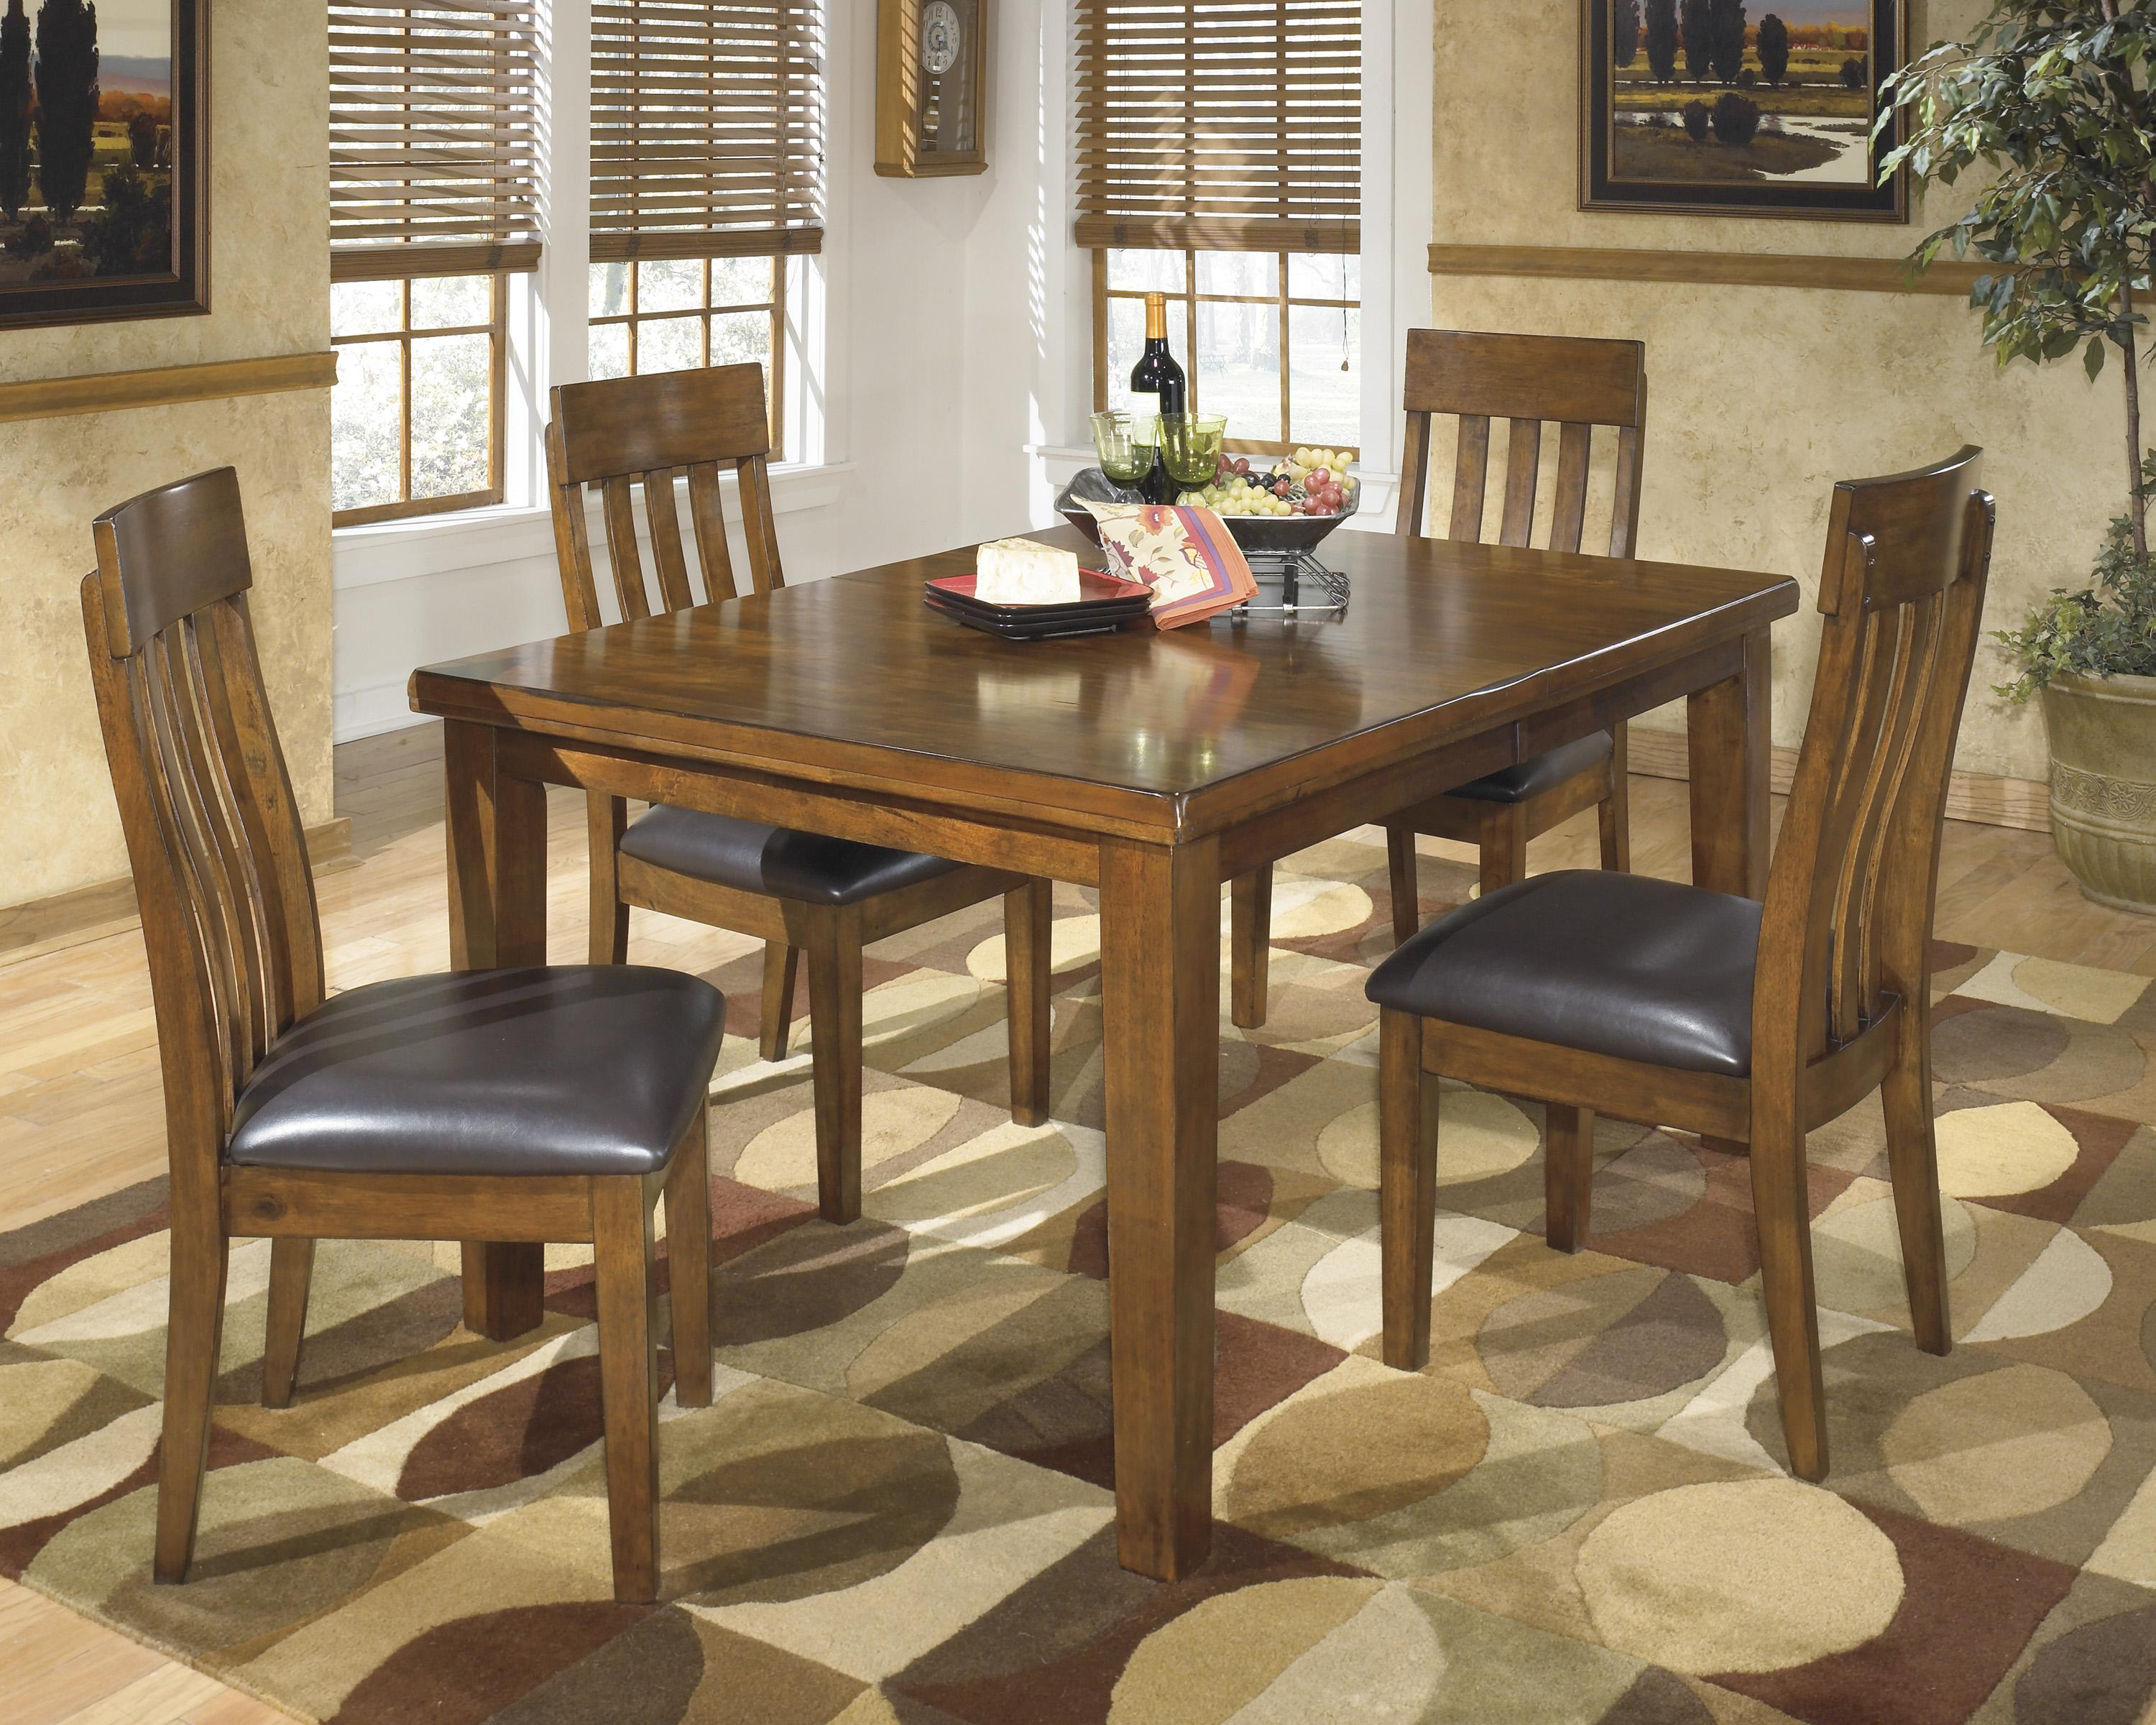 Signature Design By Ashley Ralene 5 Pc Dining Set   Item Number: D594 35